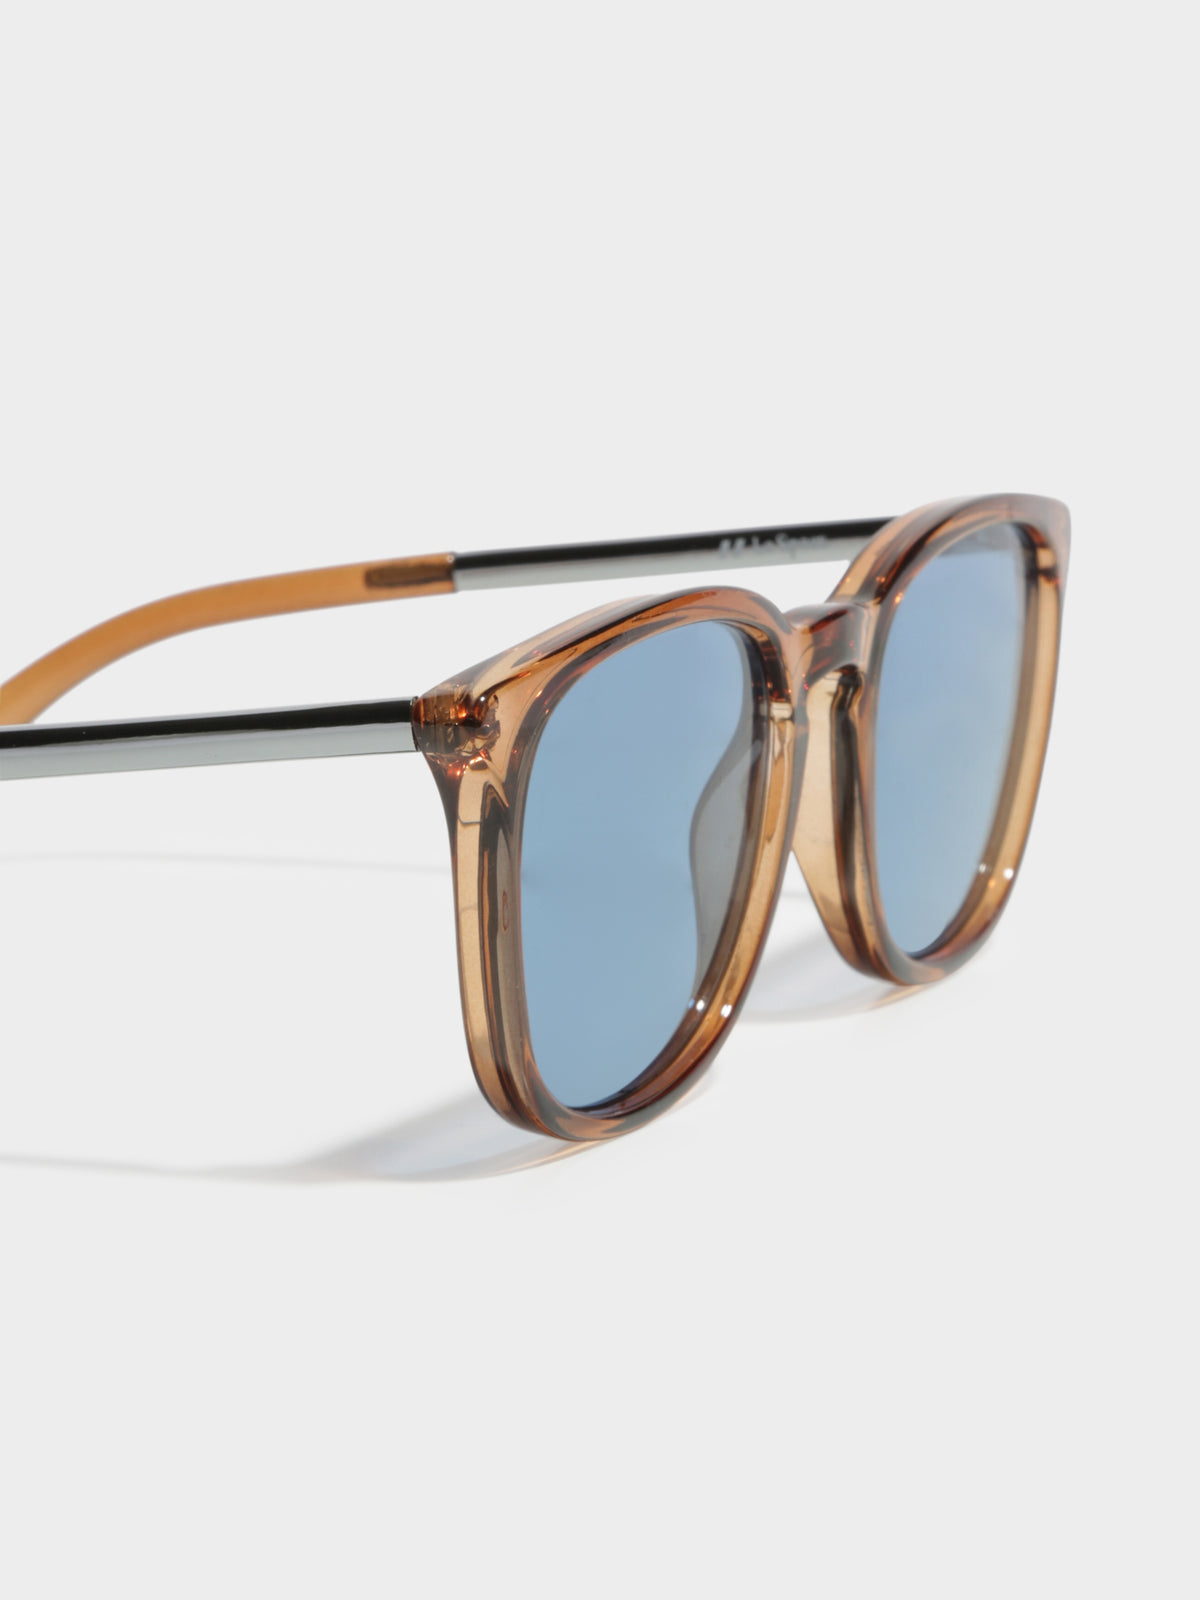 Rebeller Sunglasses in Brown